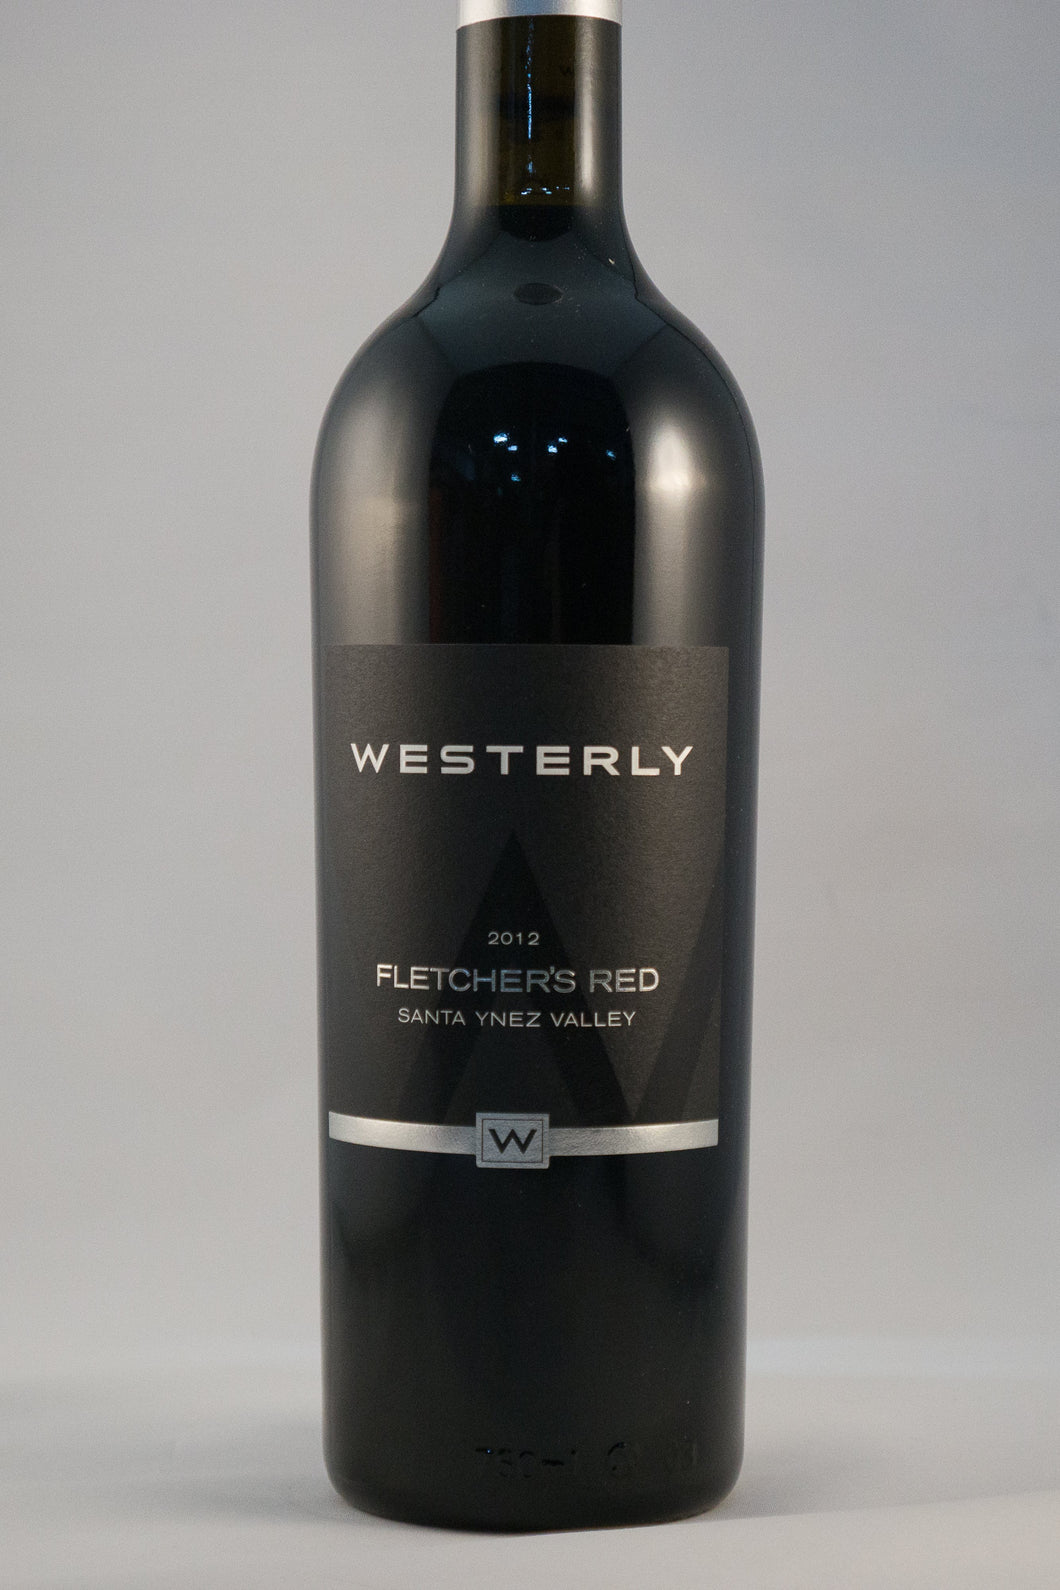 Westerly – 2012 Fletcher's Red